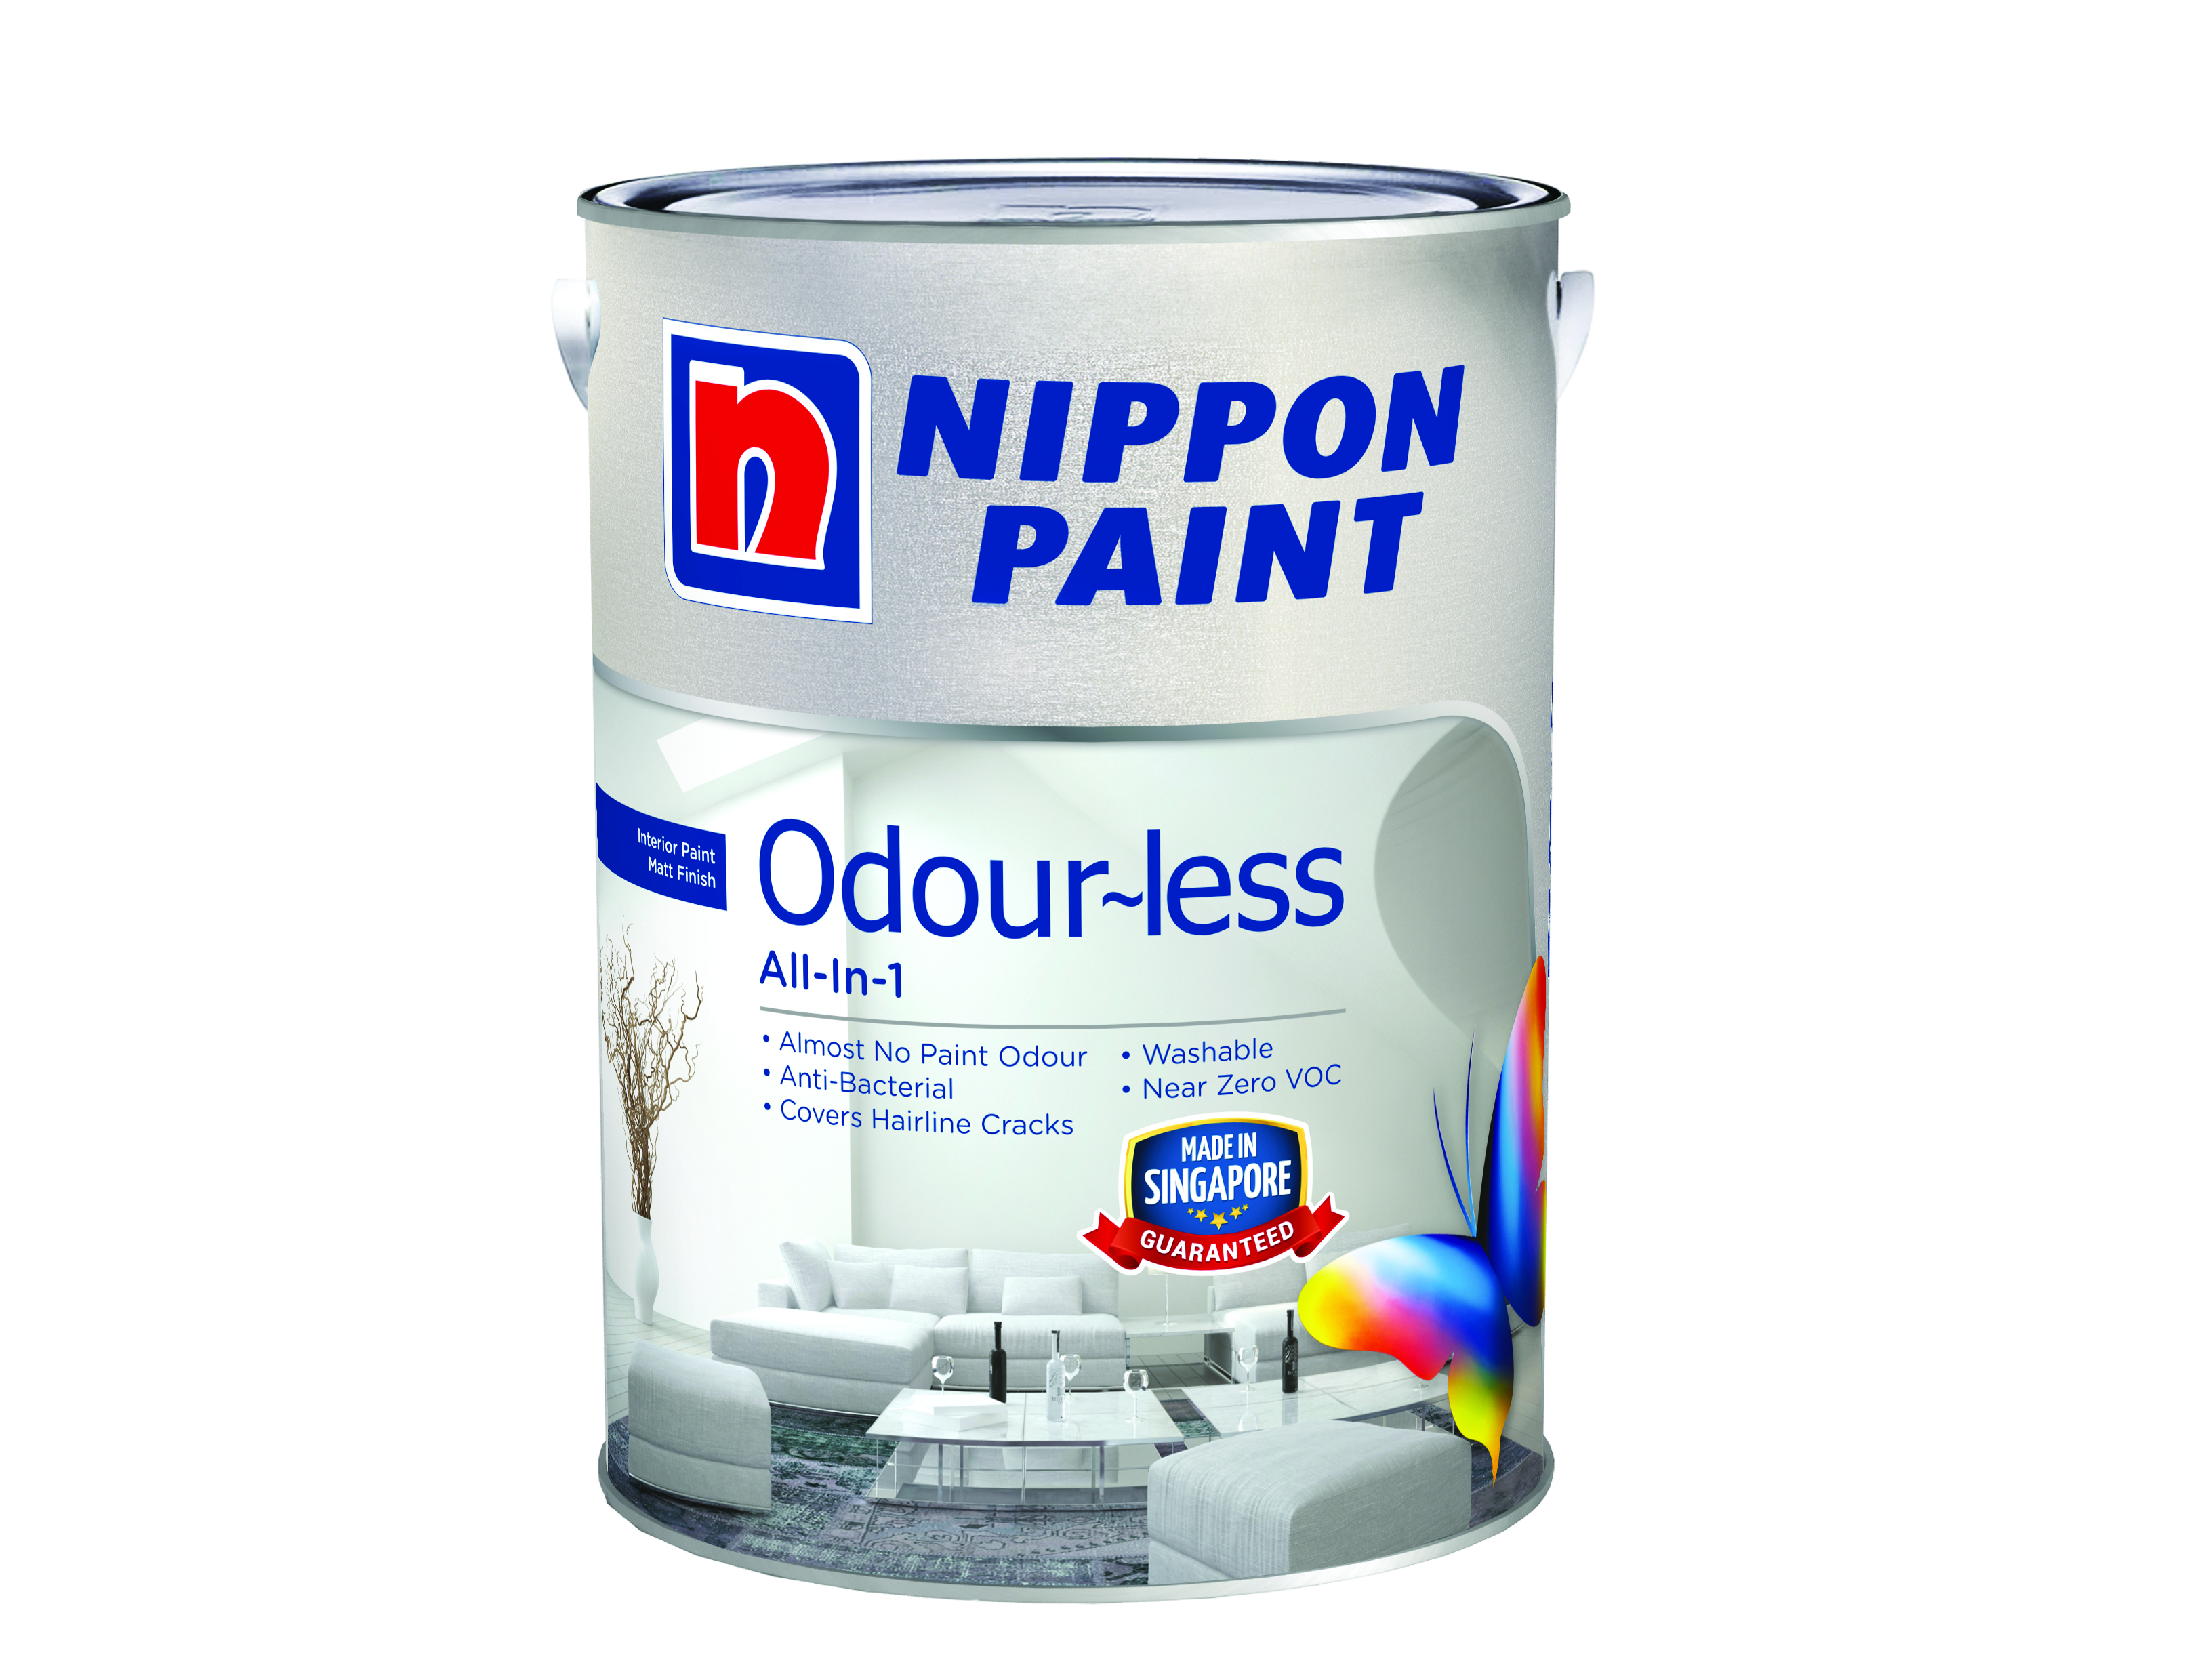 innovation analysis nippon paint co. case of odorless paint product essay The straits times, 1 june 2001 us gripped by case of the missing intern louise branson following llbvl^b^bv bhbi whenever you use nippon paint 3-in-1.